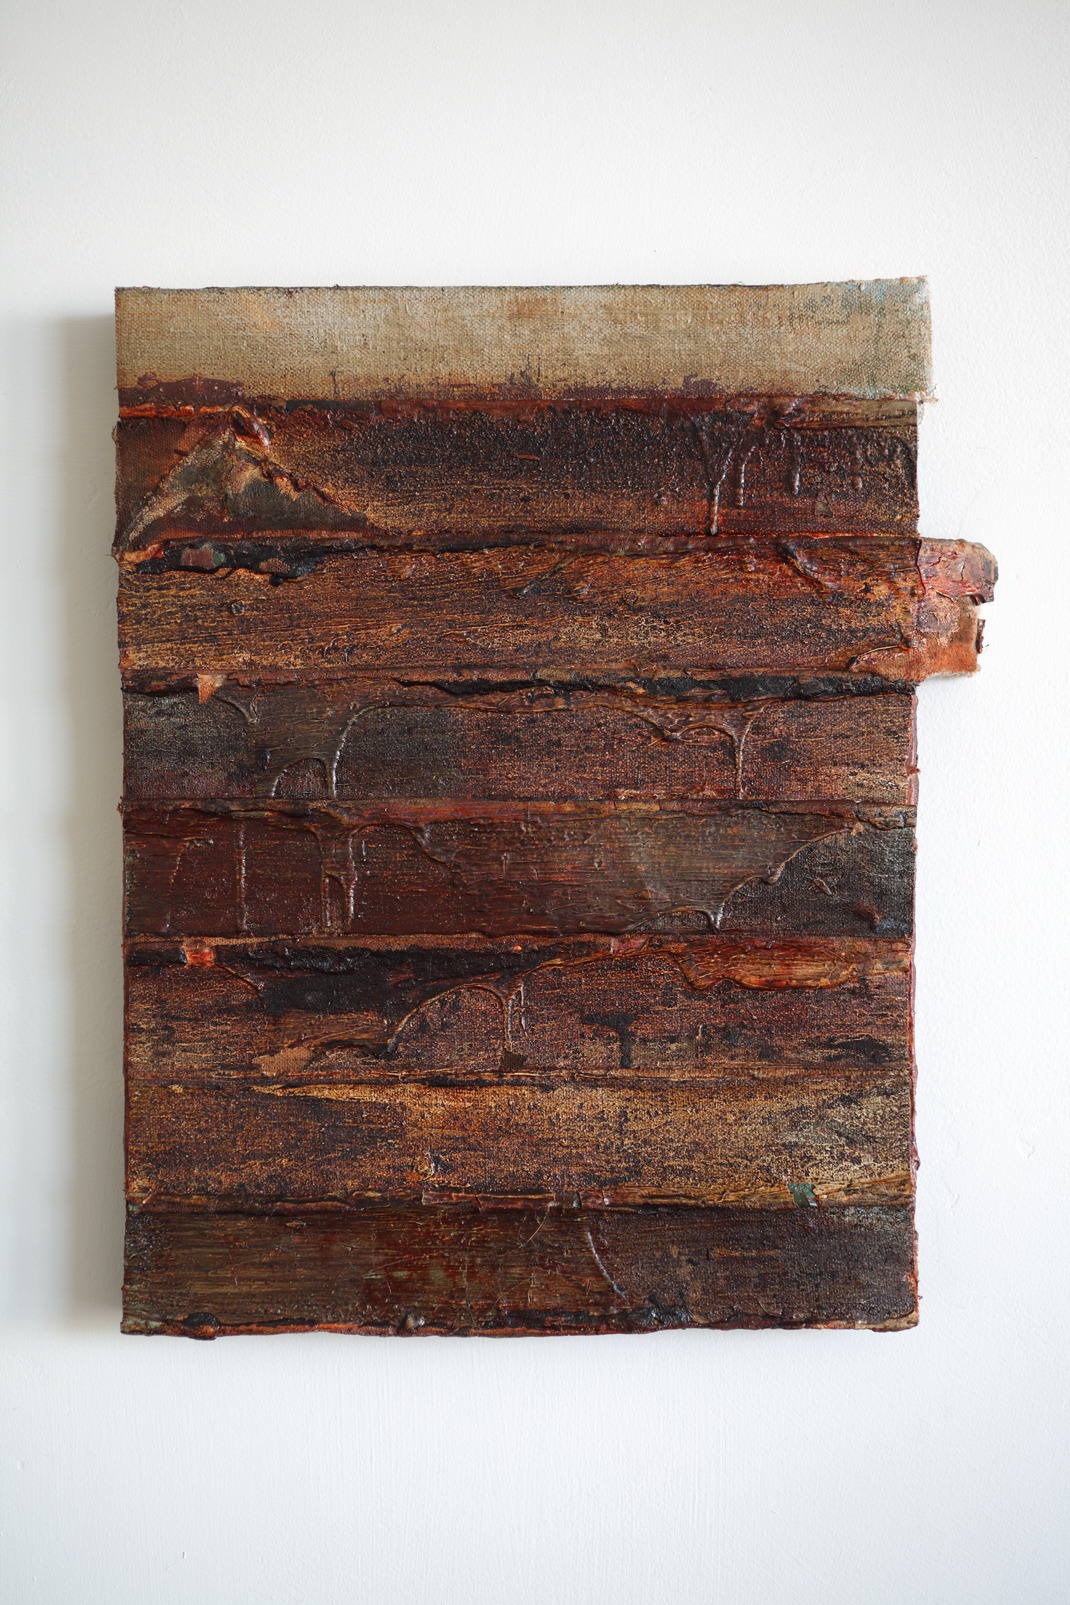 "edges,(rust lines), oil on salvaged canvas mounted on panel, 9"" by 12"", 2013 by Neal T Walsh."